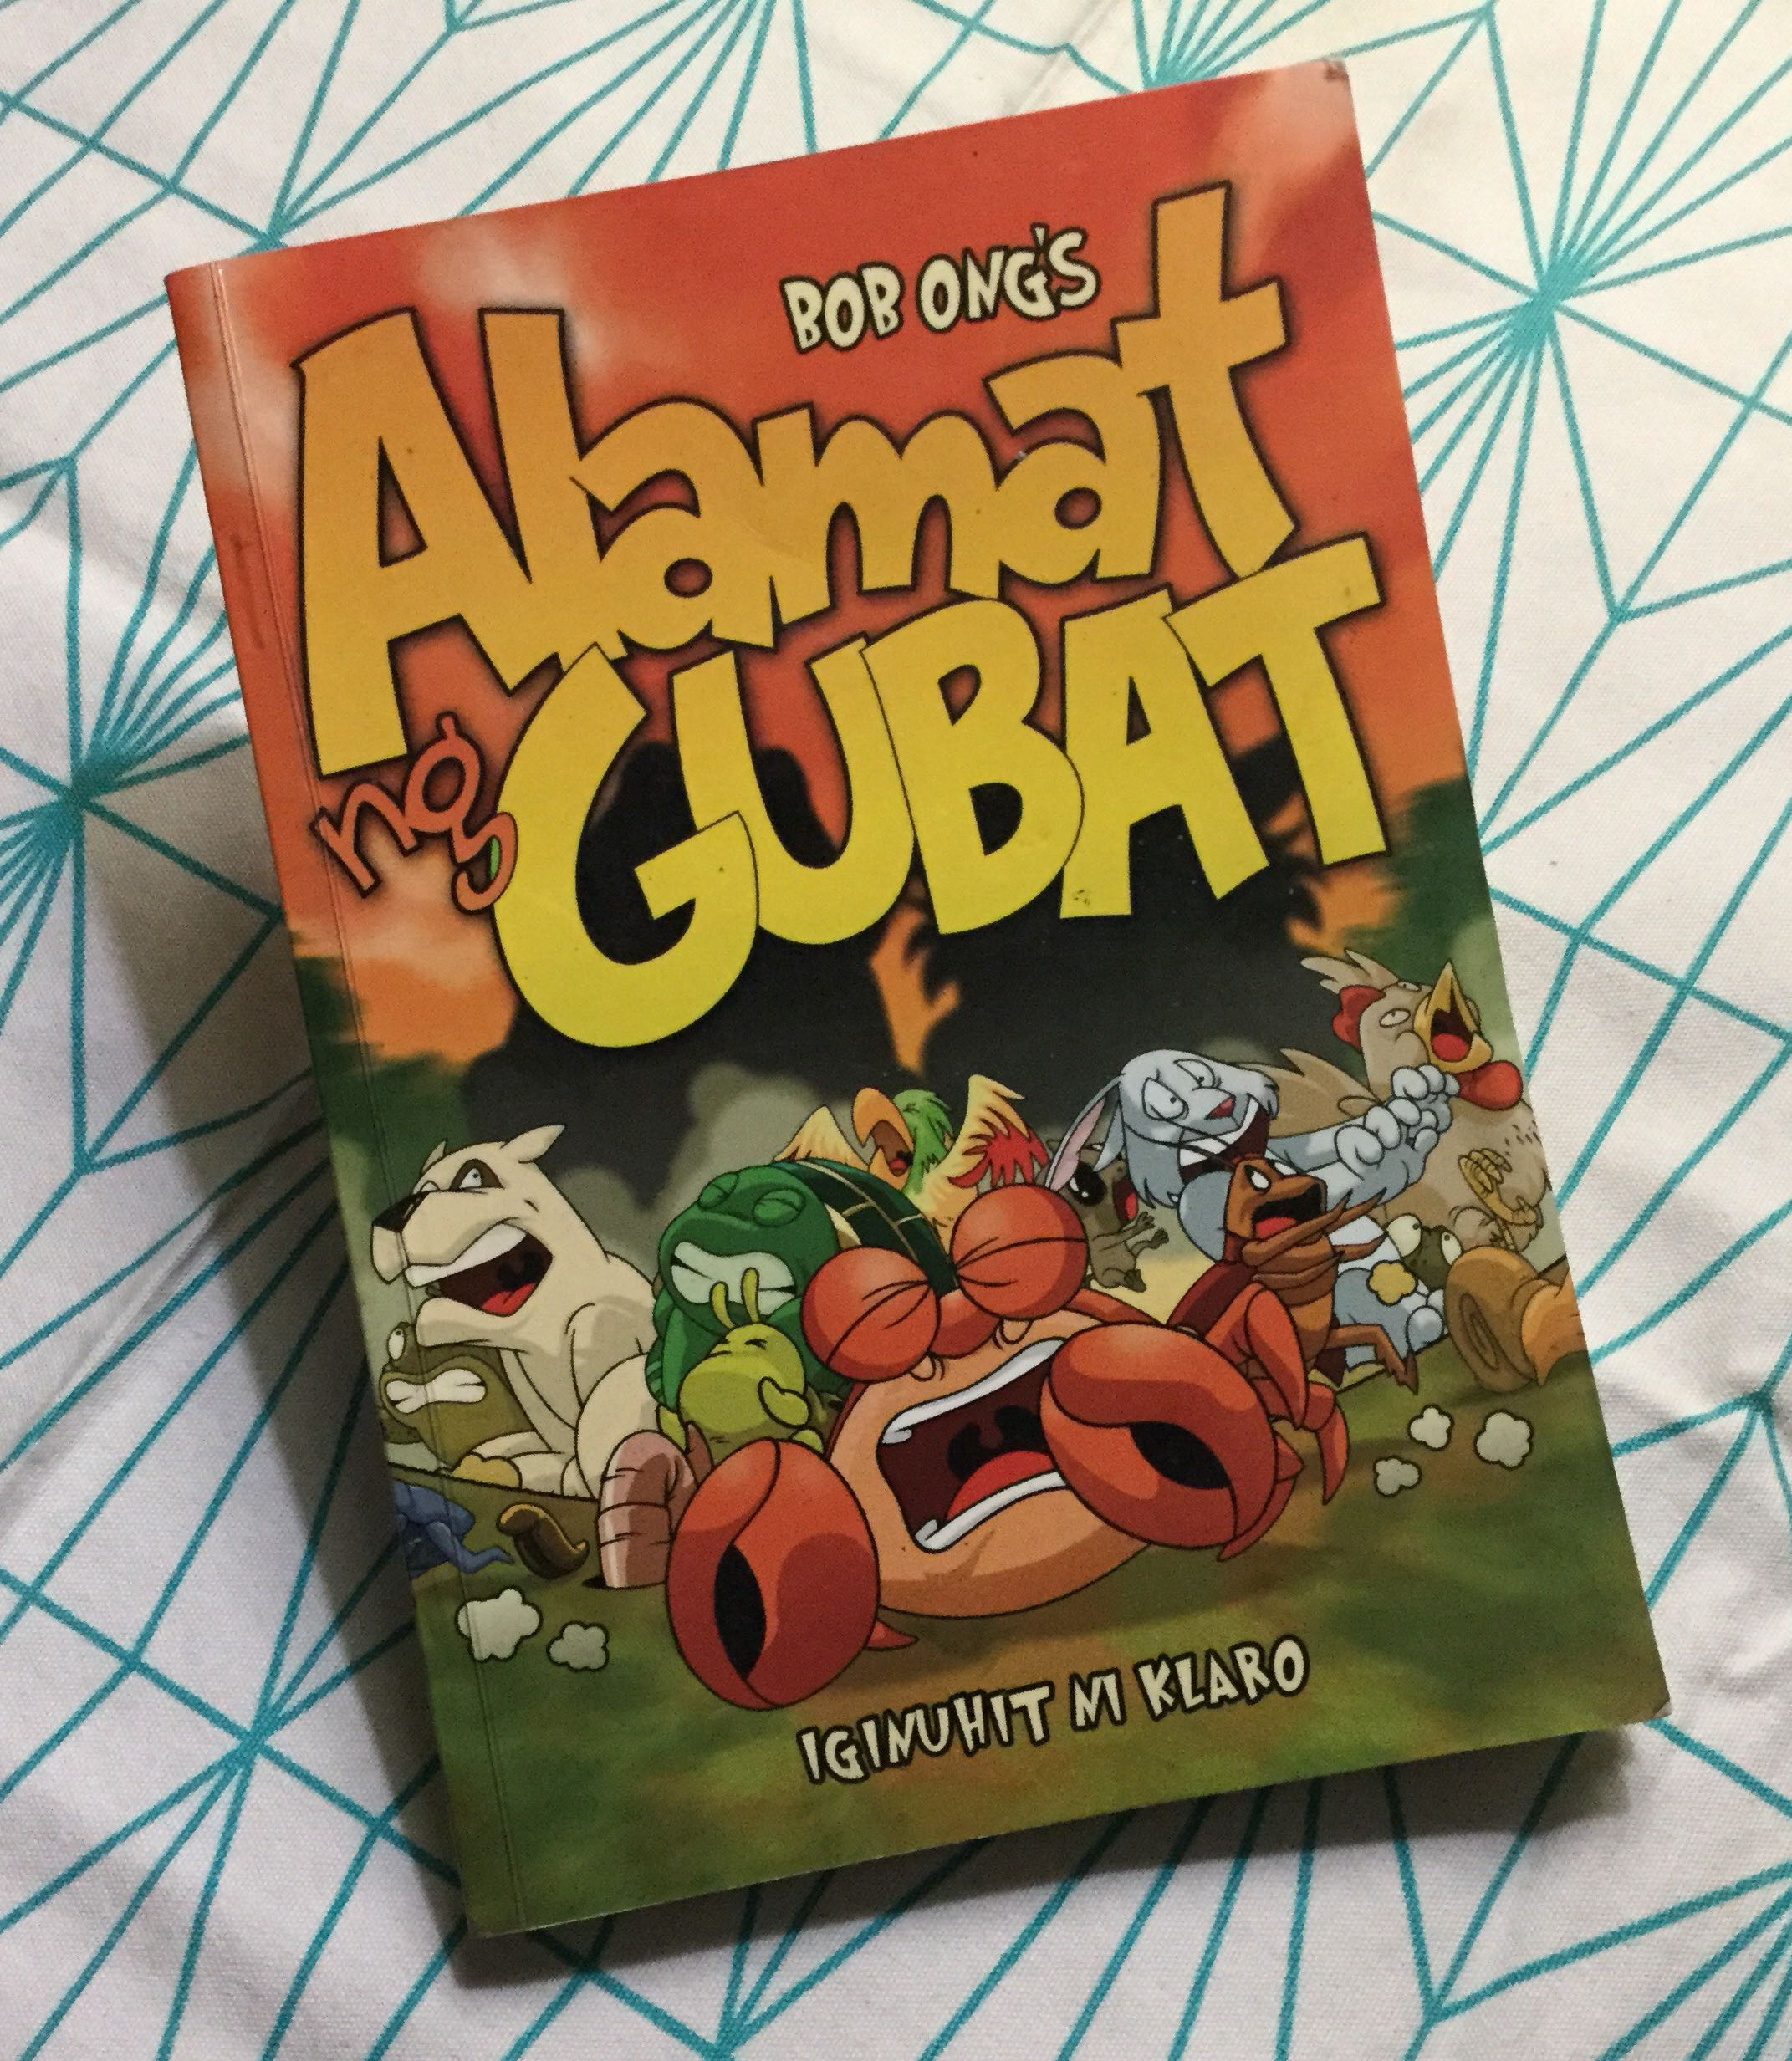 alamat ng gubat Alamat ng gubat ni bob ong pdf is an elegant and uniquely enjoyable game the main menu seems sparse with few details that would be expected of an advanced application you can set the app to automatically delete uploaded documents so that they don't take up space on your device.